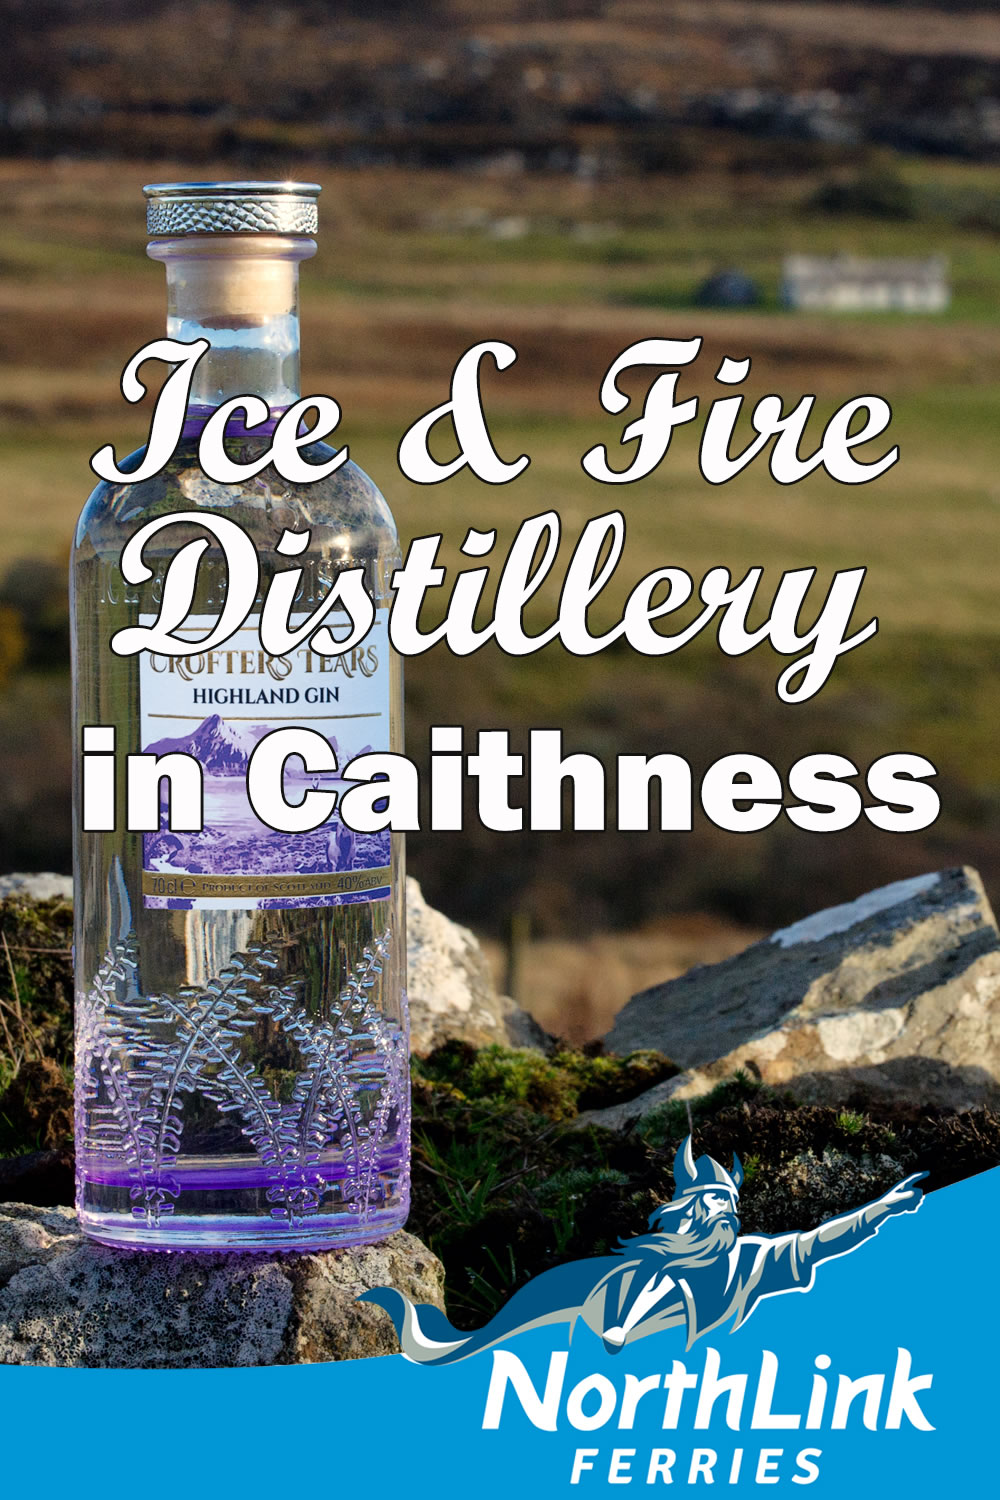 Ice & Fire Distillery in Caithness